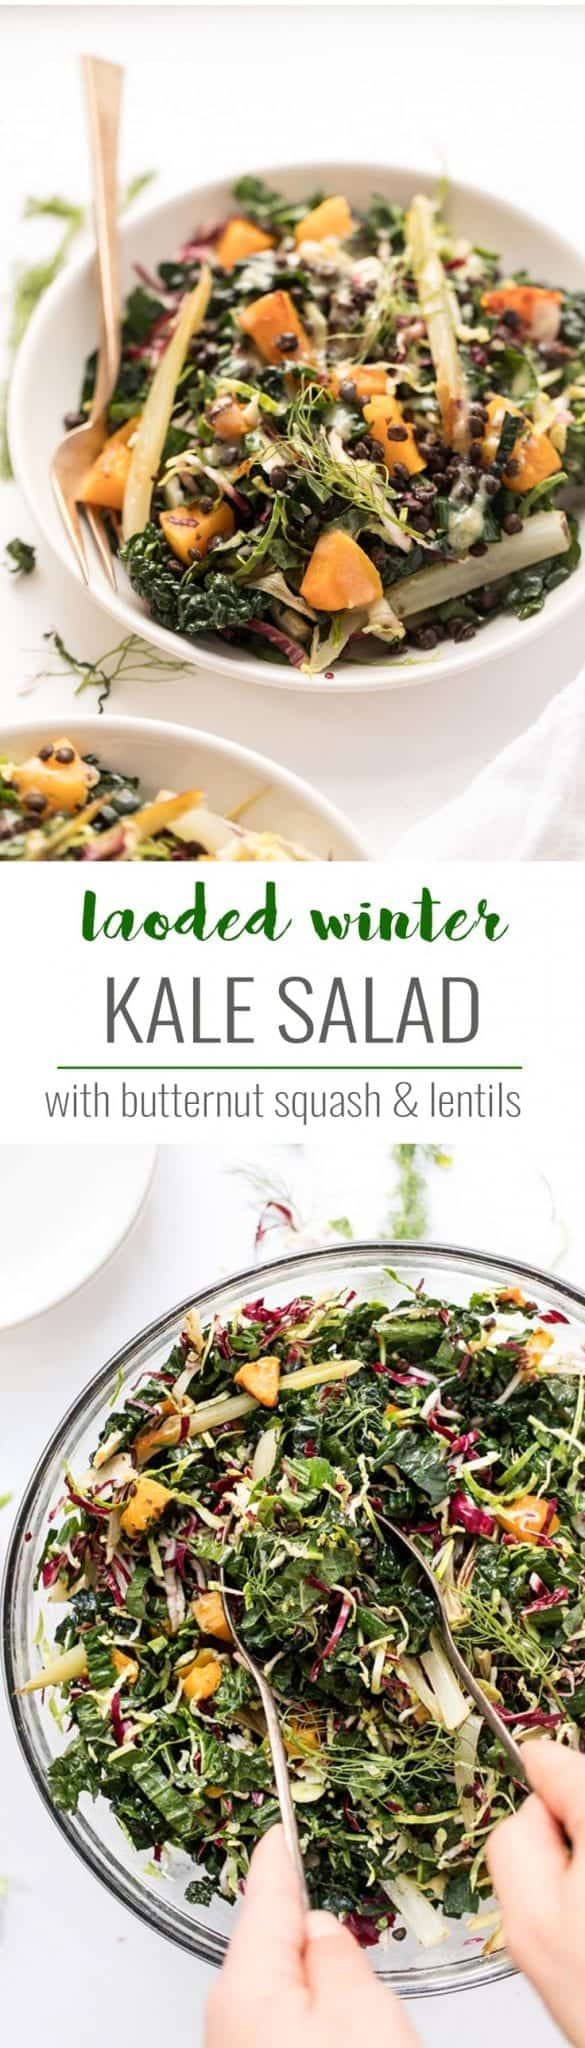 vegetarian winter kale salad with lentils and squash